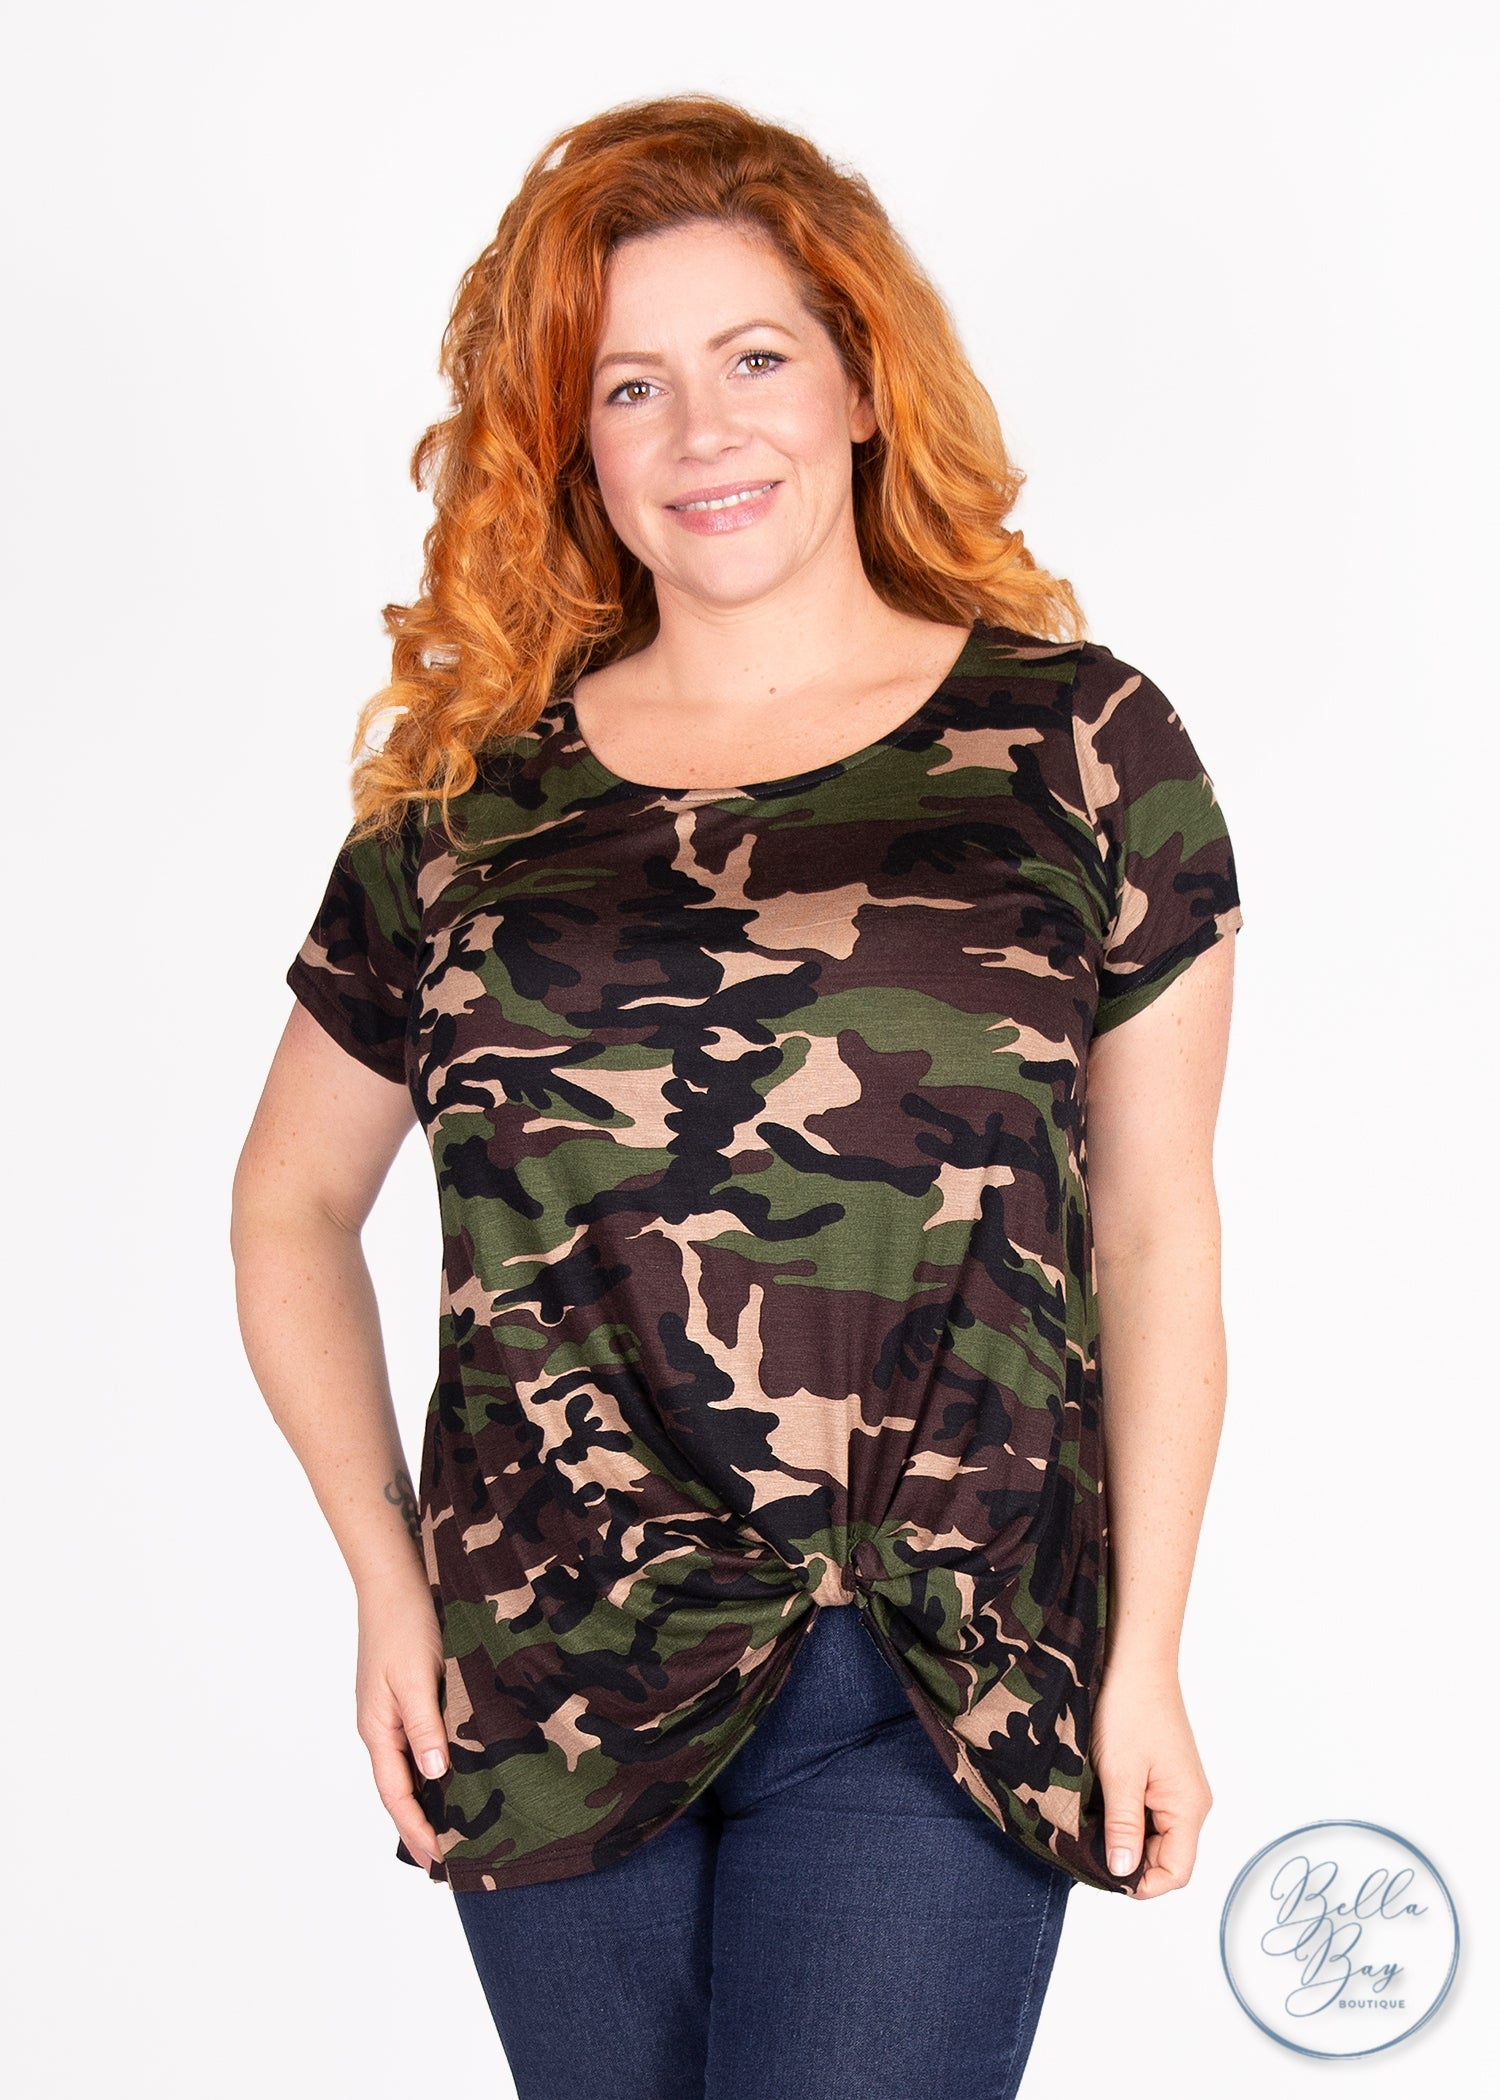 Paisley Raye Nerine Tee - Camo (0X) - Paisley Raye with Bella Bay Boutique, shop now at  https://shopbellabay.com/ or locally in Newport Oregon